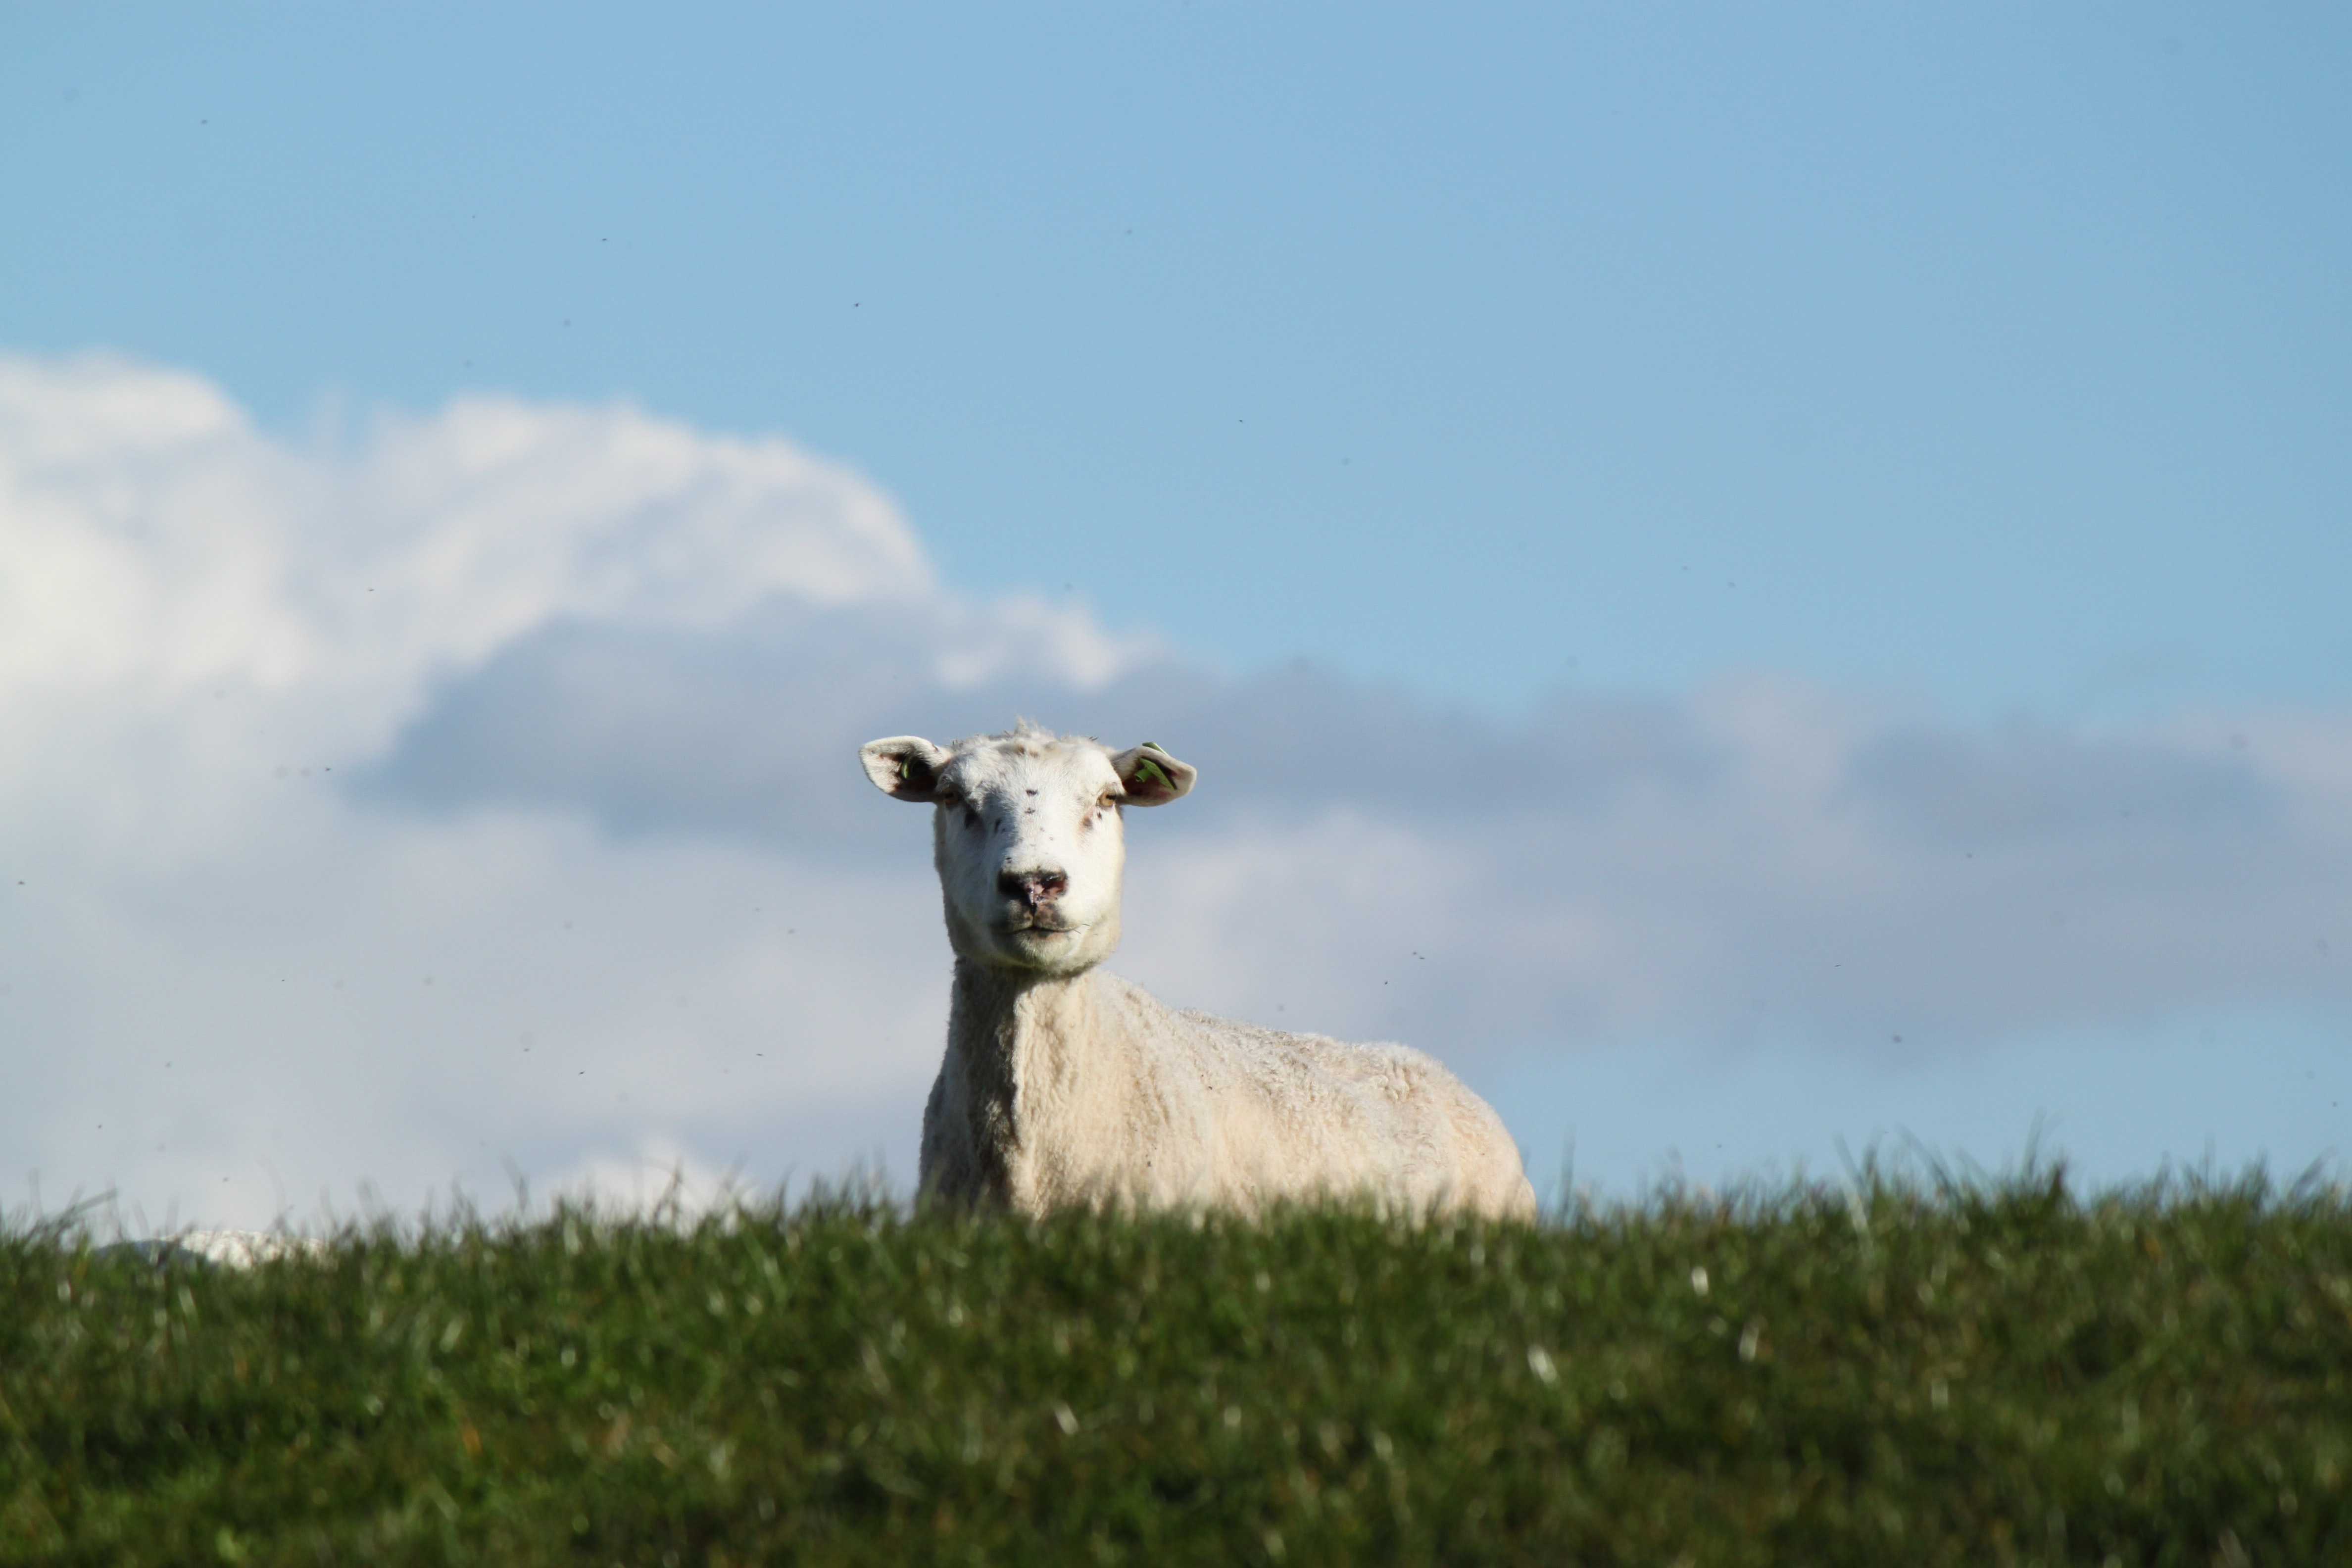 Lone sheep stares over the top of a grassy hill